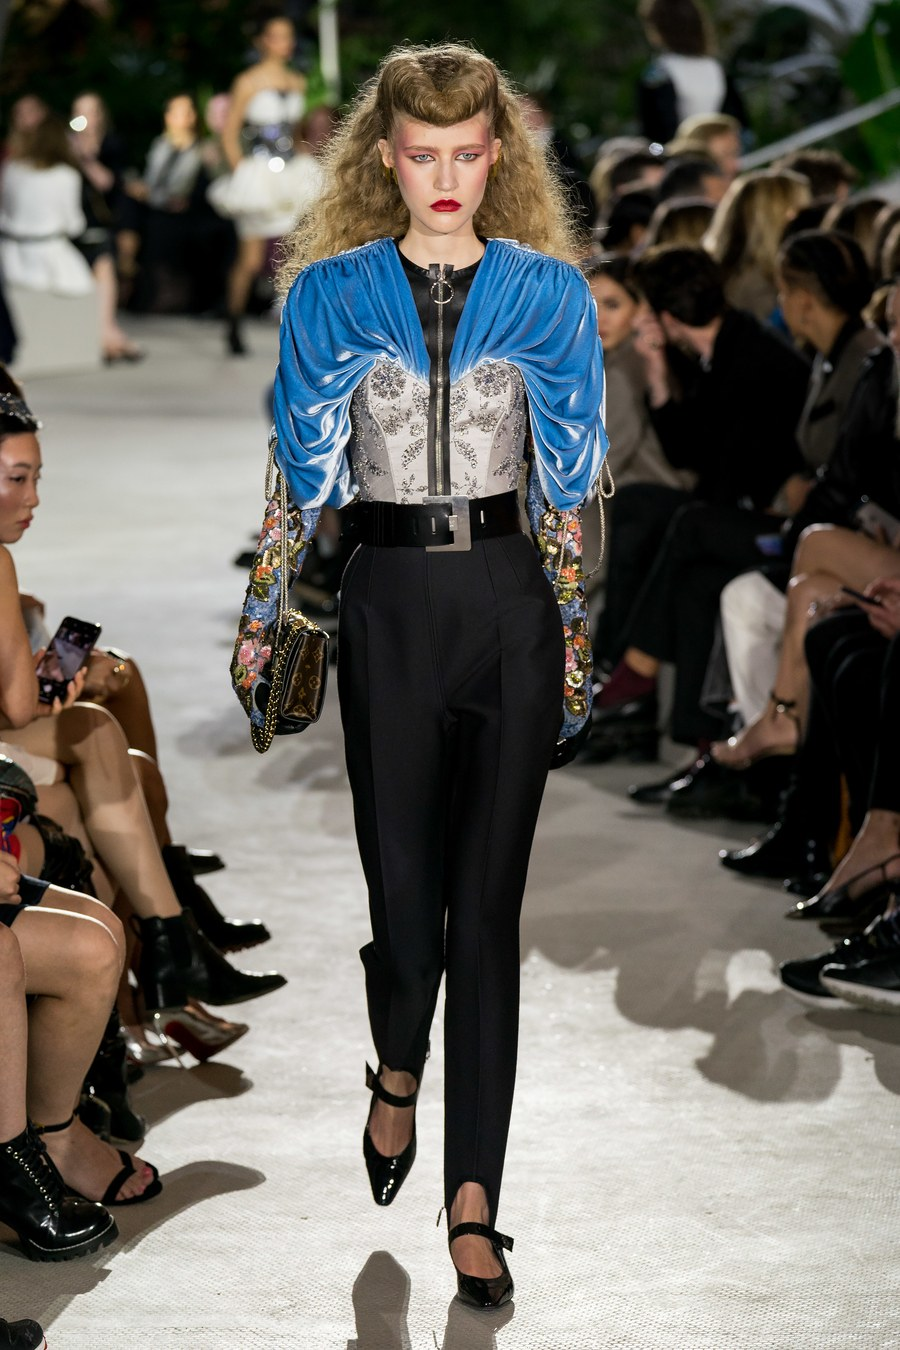 bst louis vuitton cruise 2020 corset tay bồng